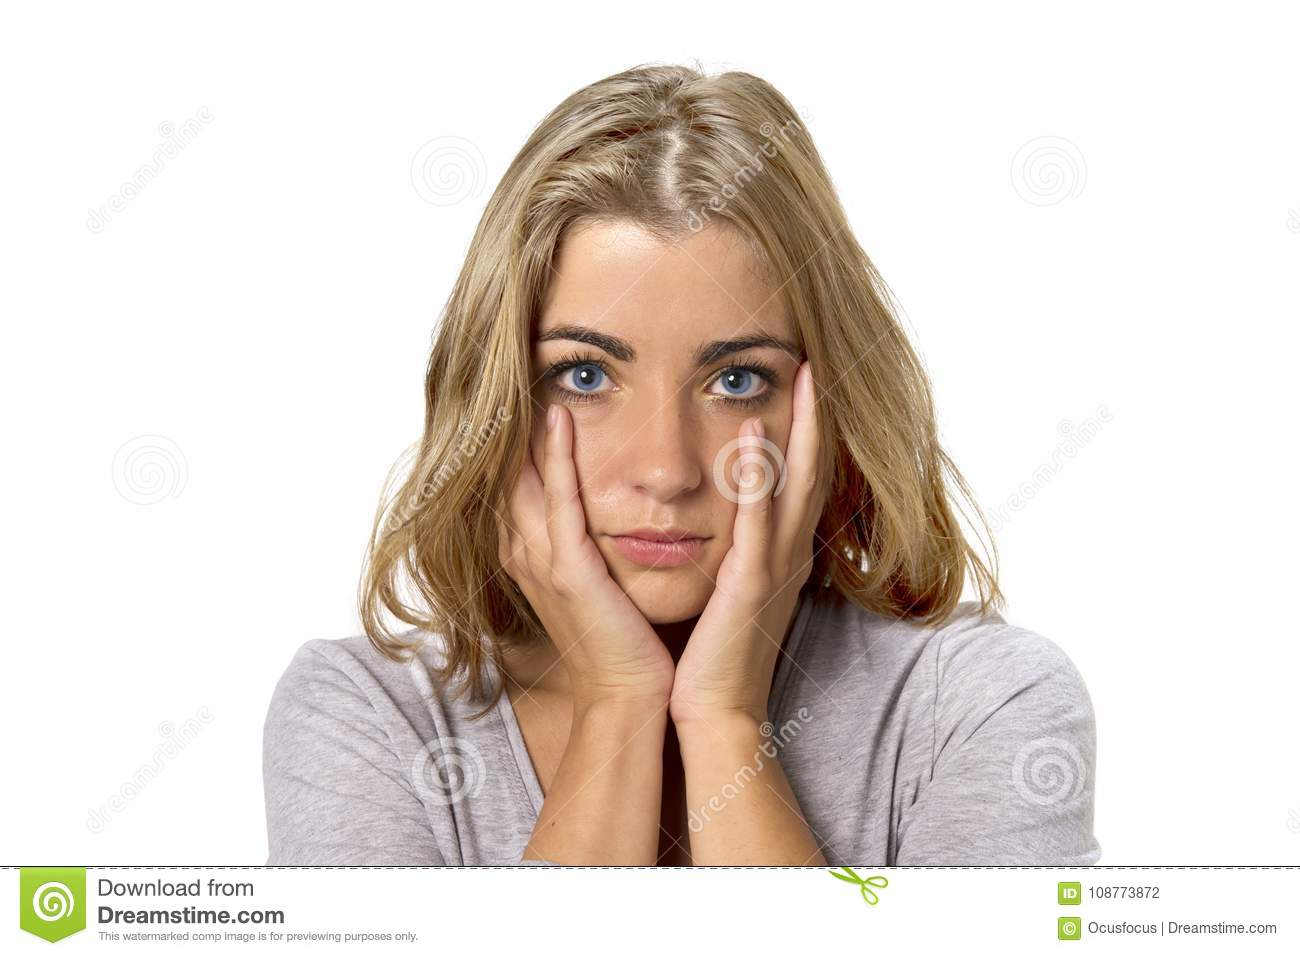 Head portrait of young beautiful and sweet blond girl with blue eyes looking sad and depressed, shy and worried in sadness emotion